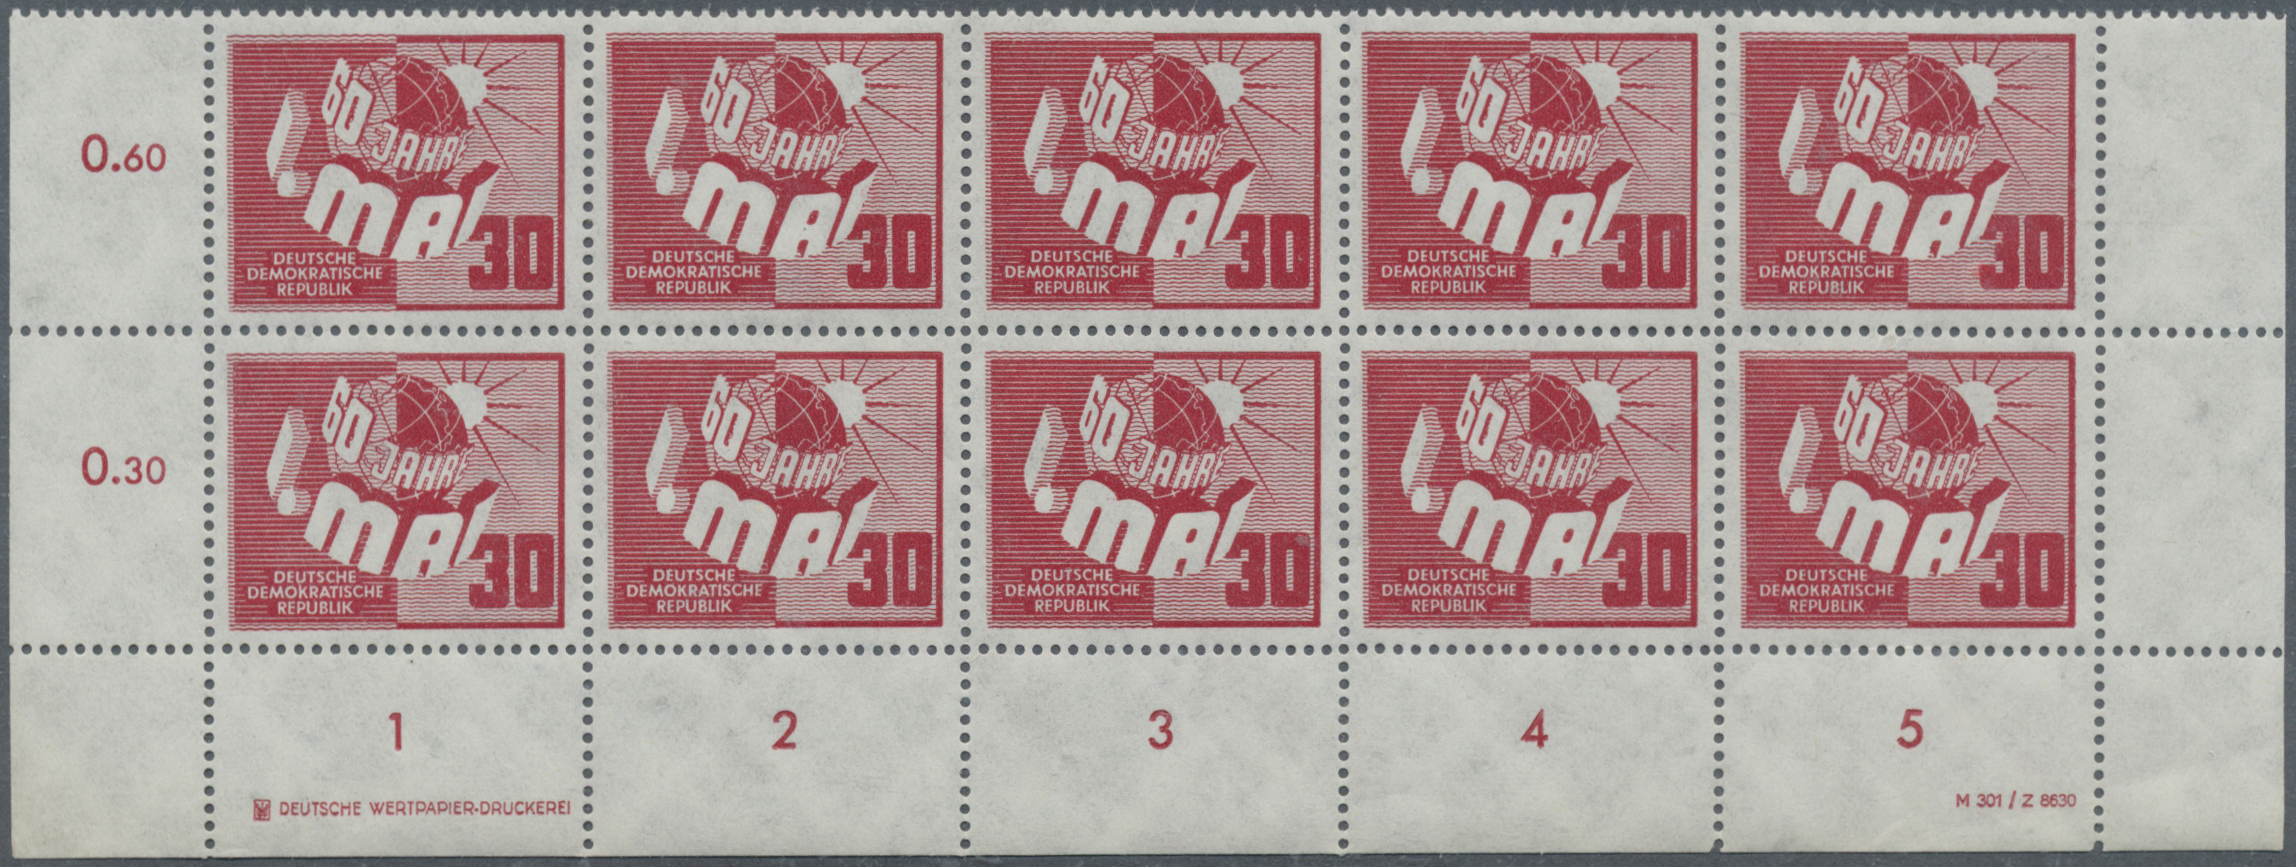 Lot 20186 - ddr  -  Auktionshaus Christoph Gärtner GmbH & Co. KG Auction #40 Germany, Picture Post Cards, Collections Overseas, Thematics